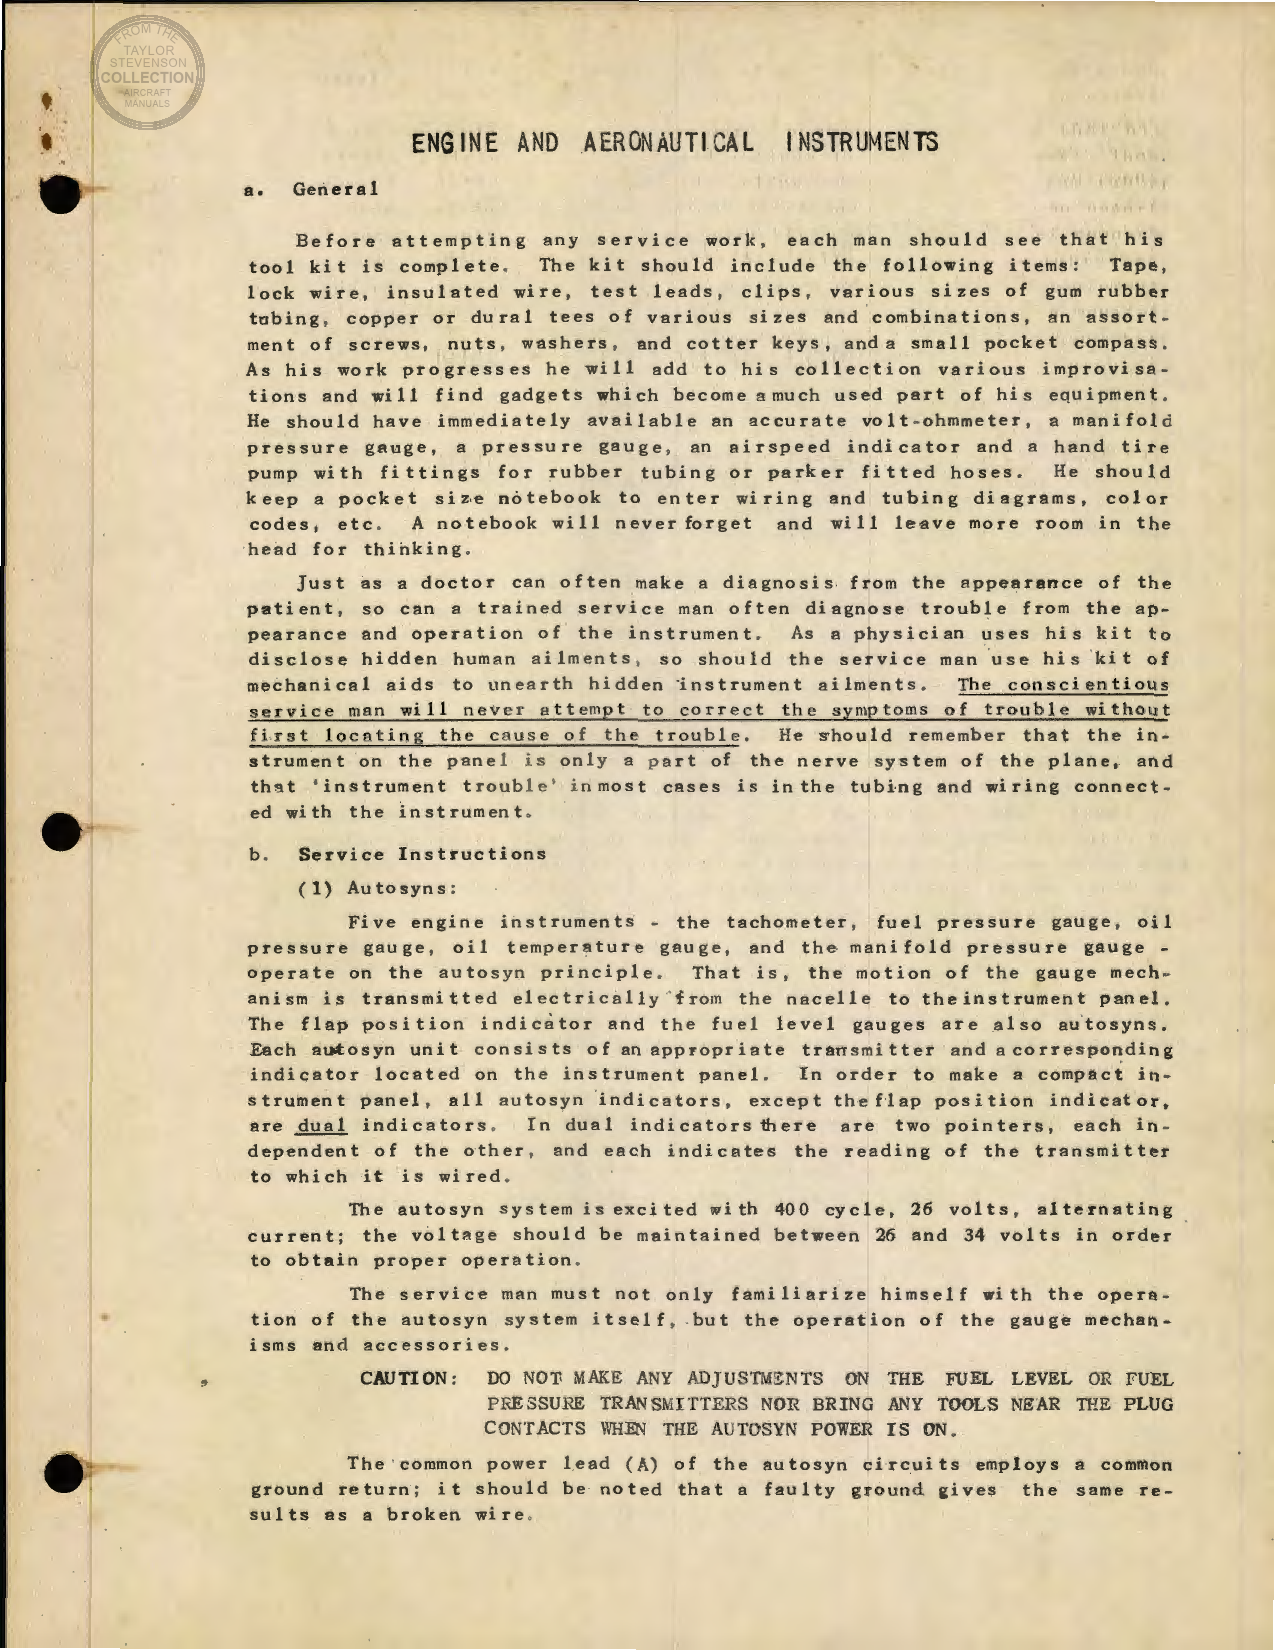 Sample page 1 from AirCorps Library document: Engine and Aeronautical Instruments for the B-17